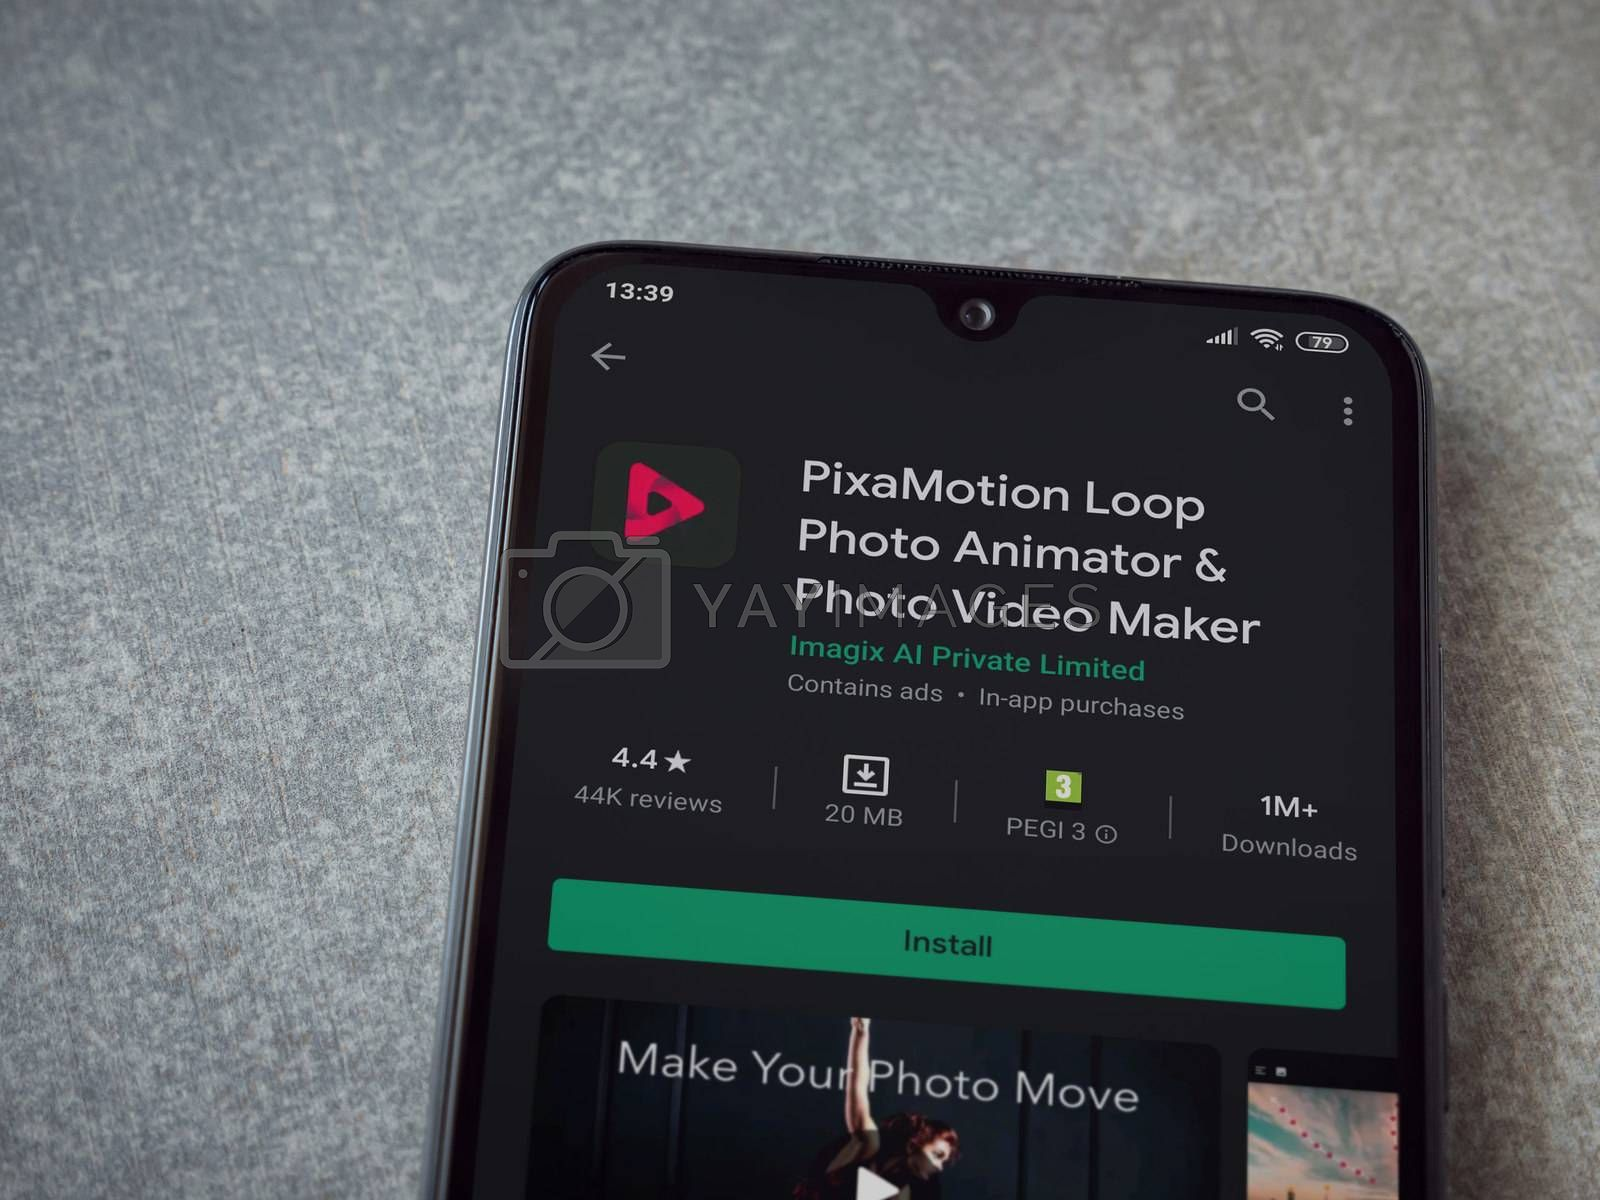 Lod, Israel - July 8, 2020: PixaMotion app play store page on the display of a black mobile smartphone on ceramic stone background. Top view flat lay with copy space.